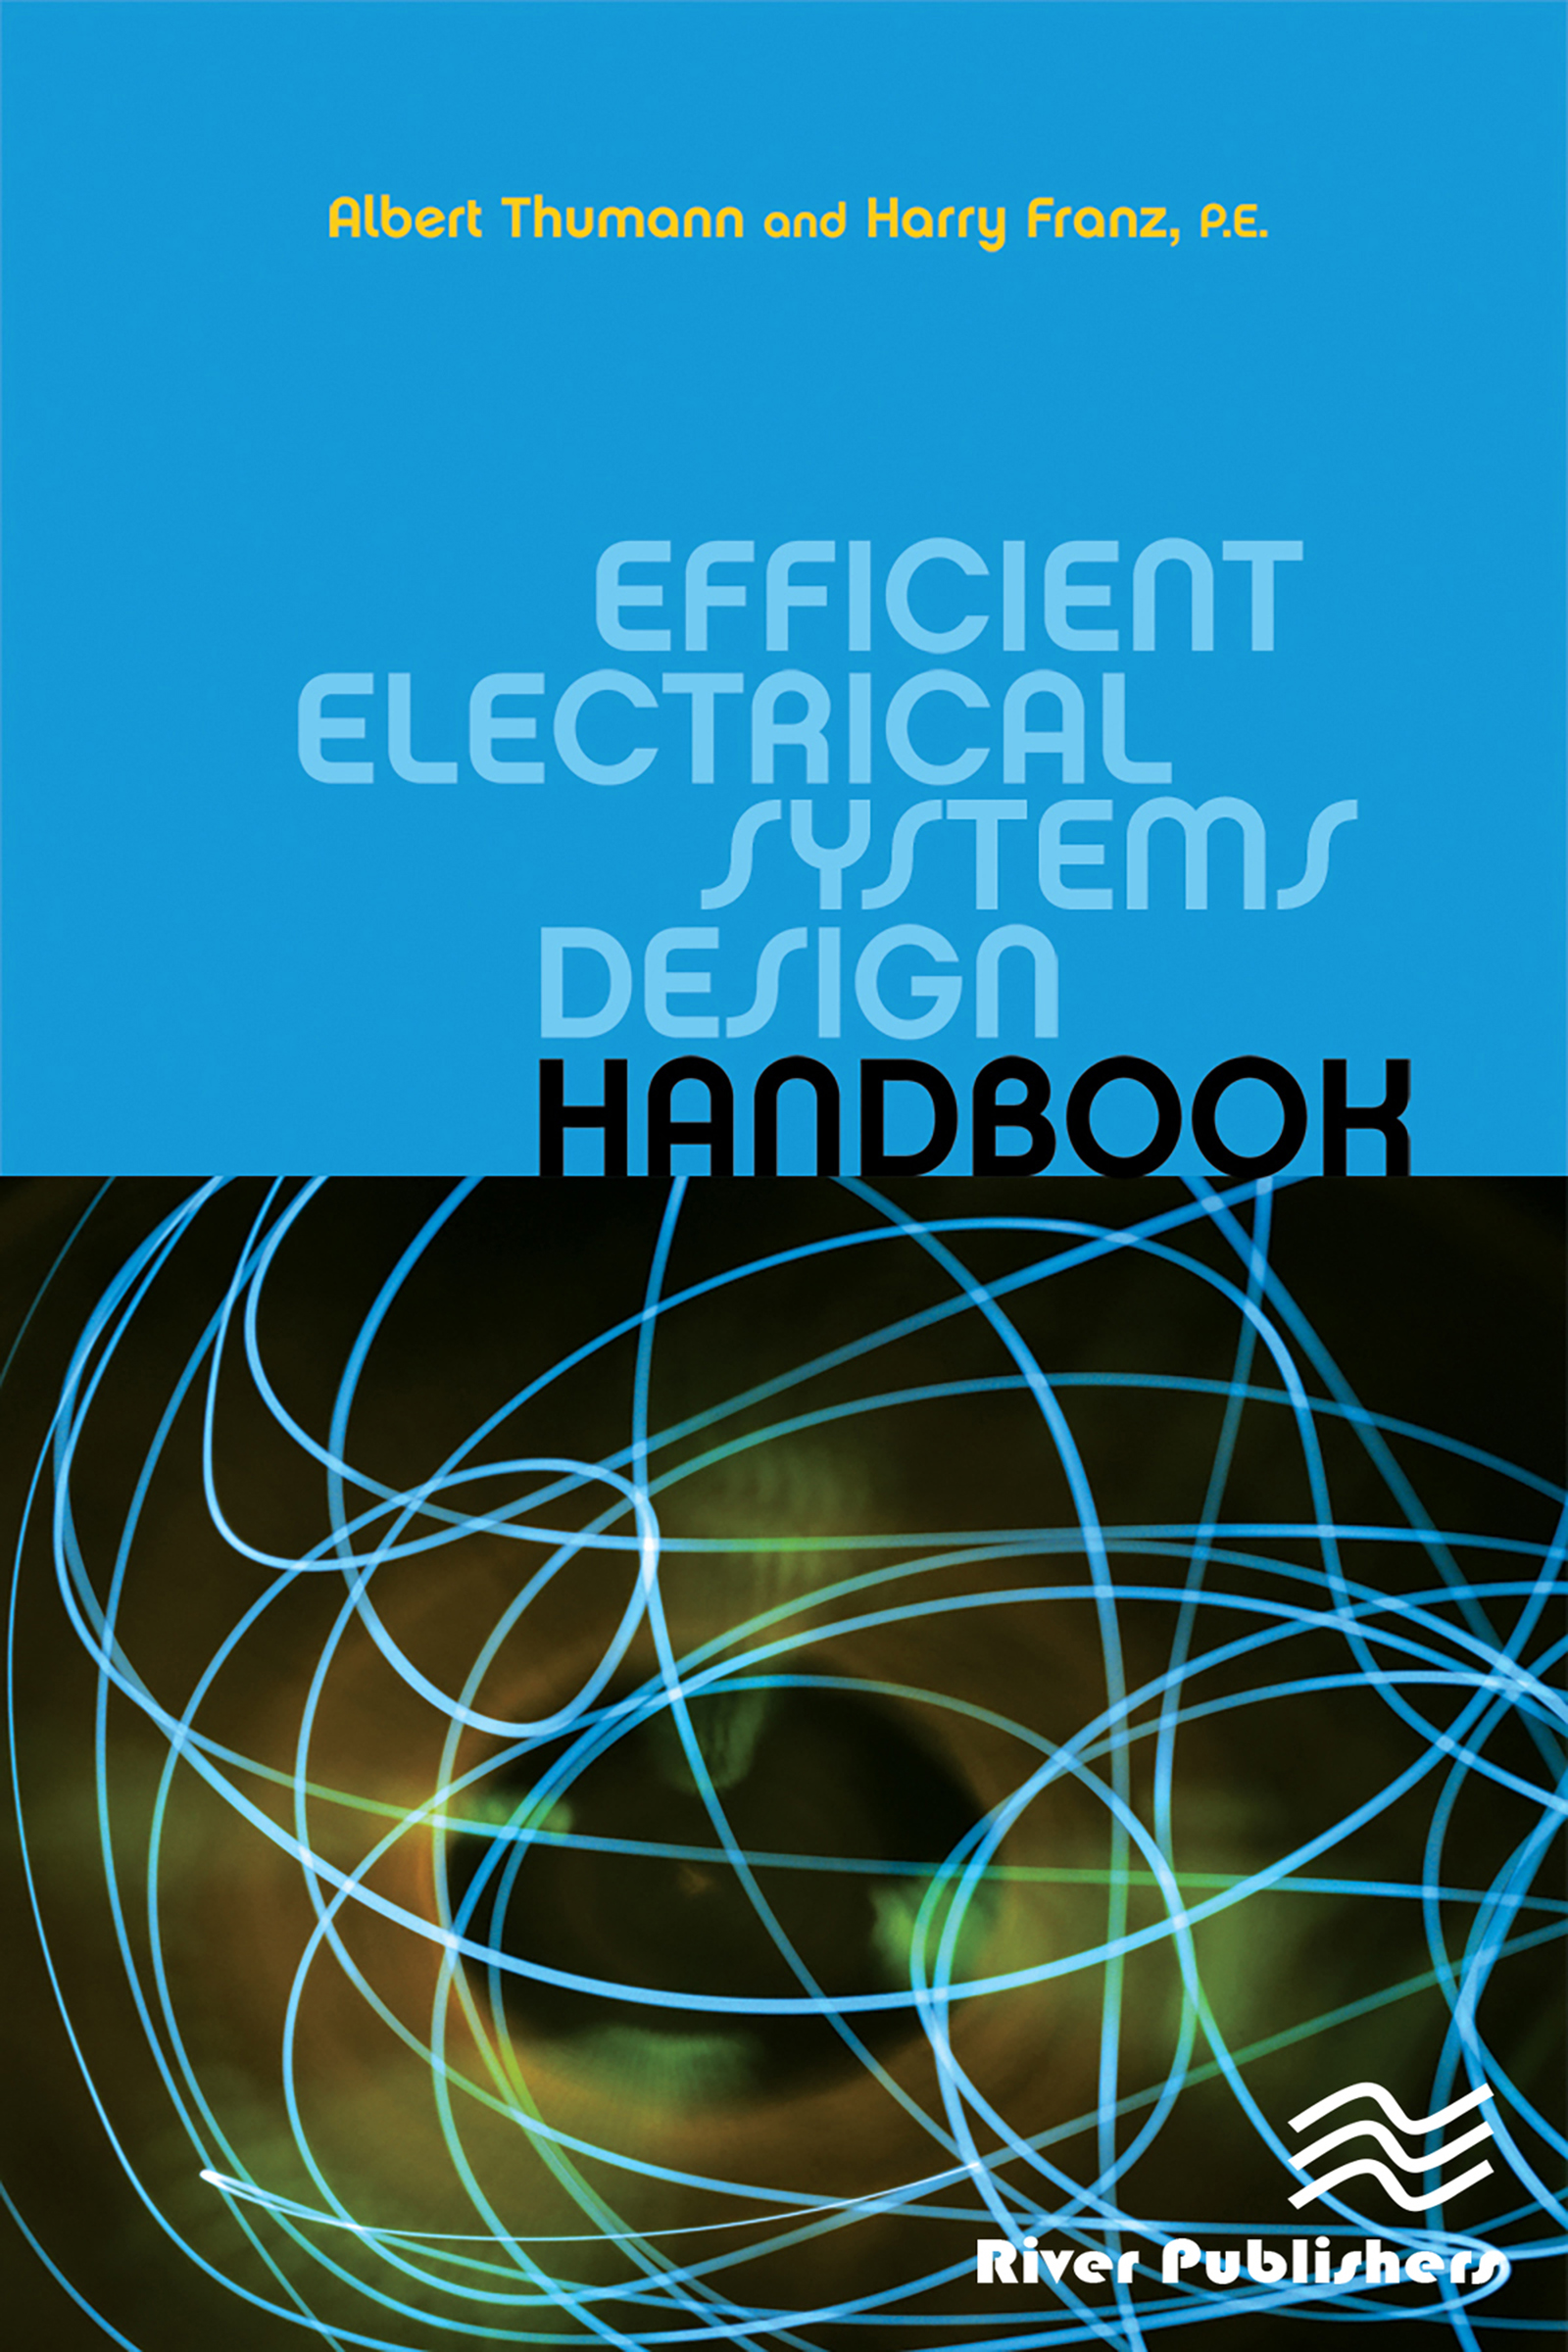 Using the Language of the Electrical Engineer